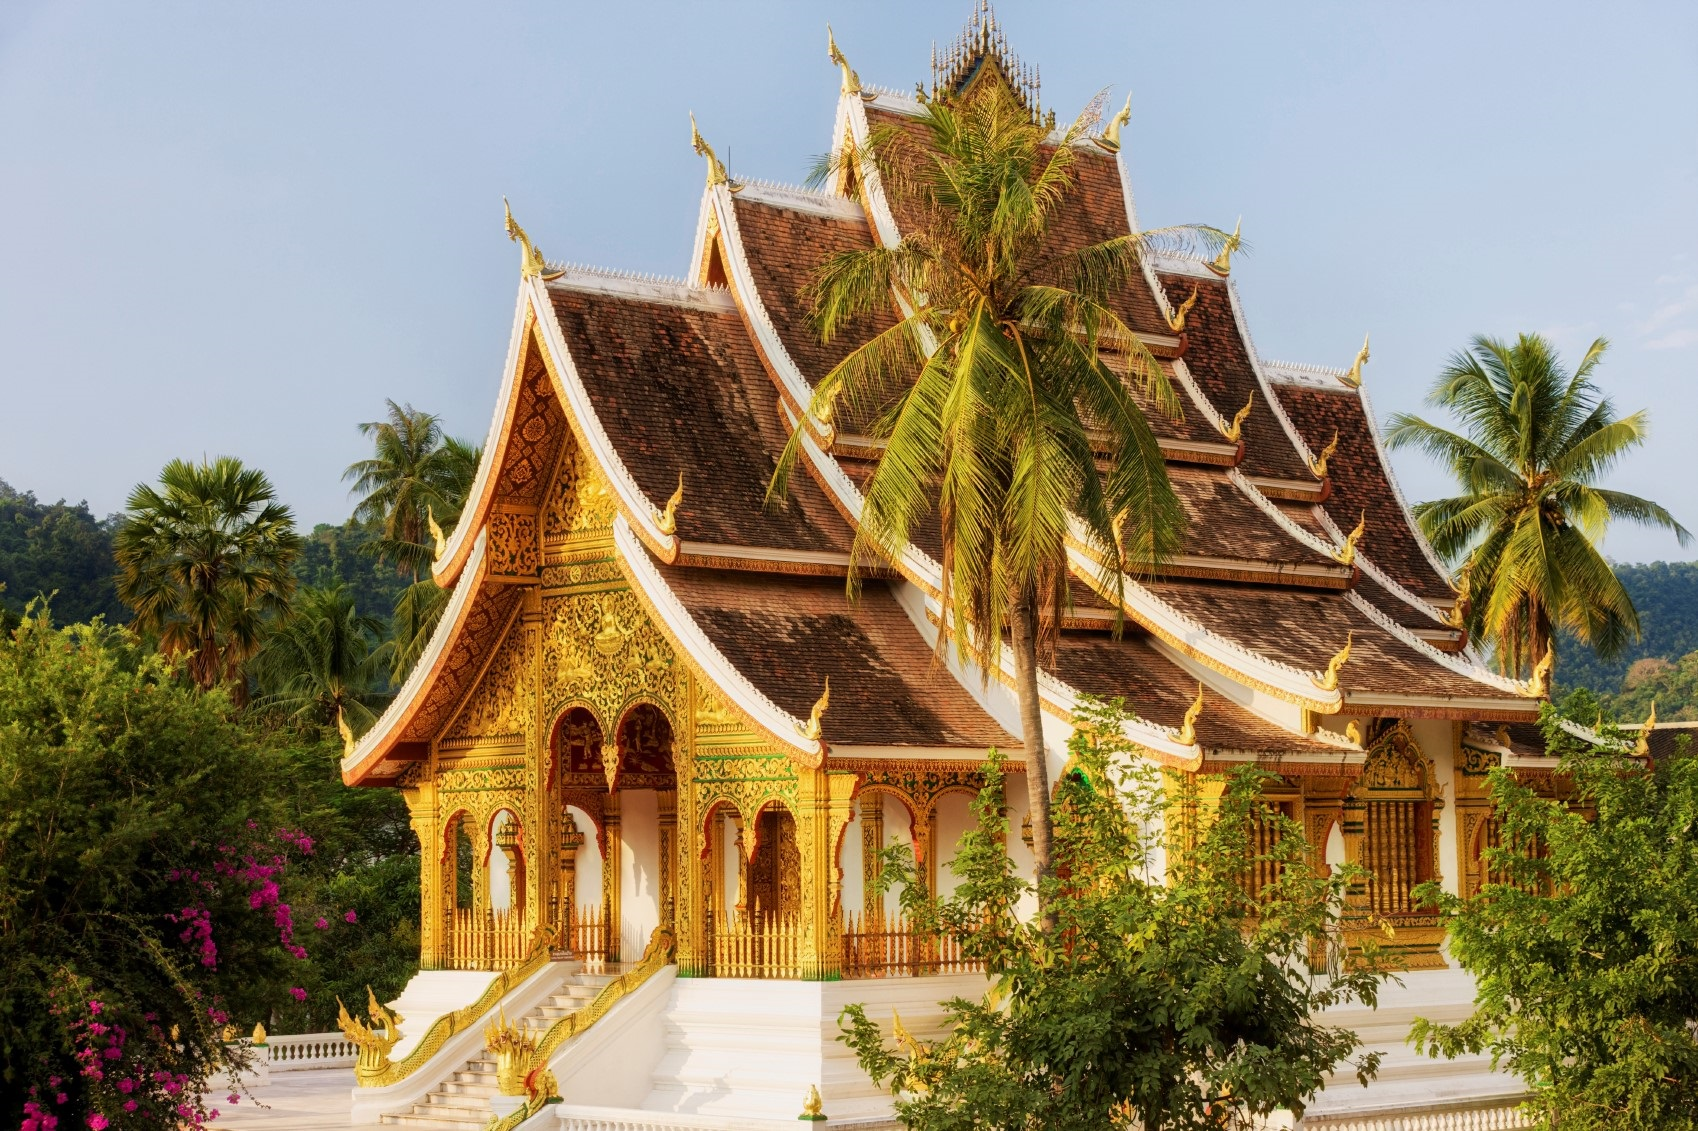 Luxury hotels in laos luxury accommodation in laos for Luxury hotels in laos